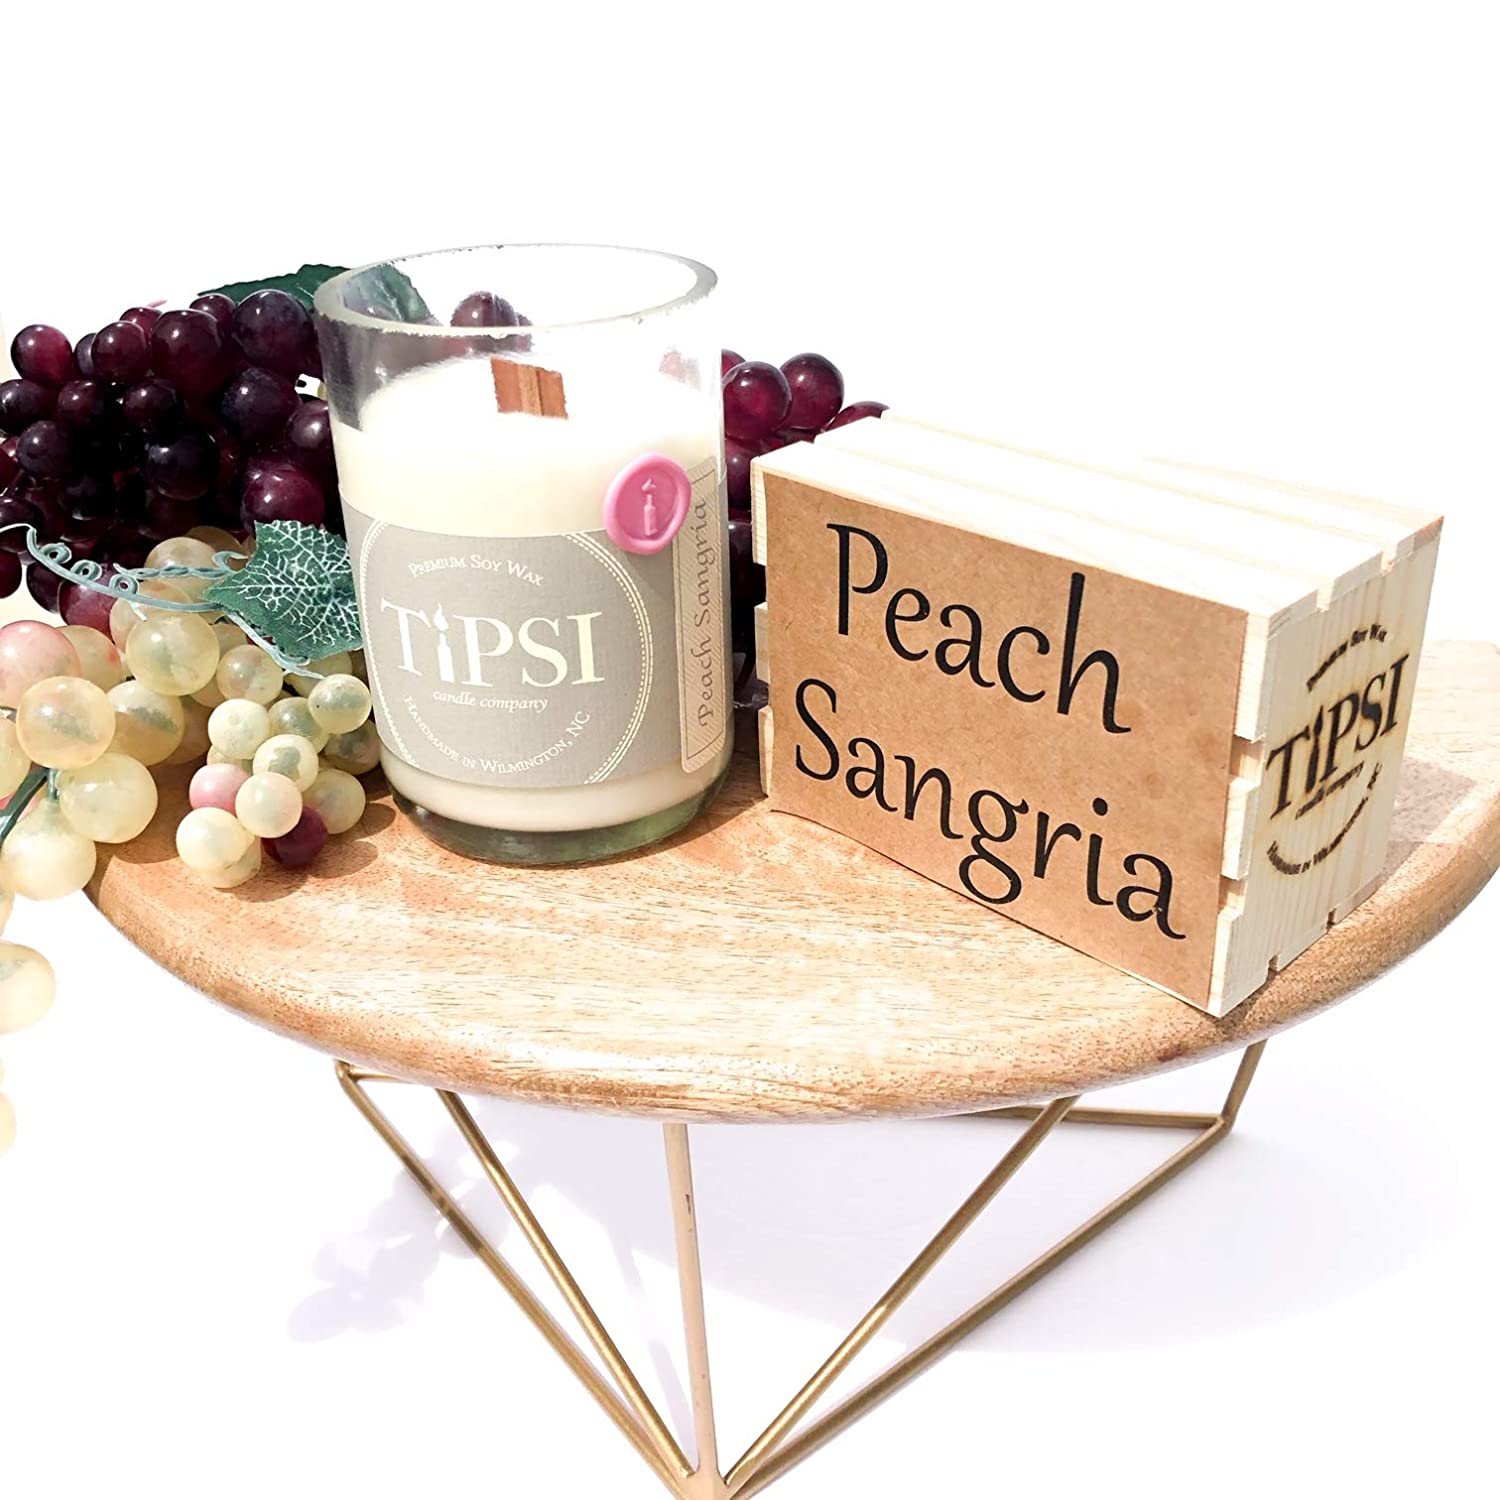 Peach Sangria Wine Bottle Candle with Wooden Wick